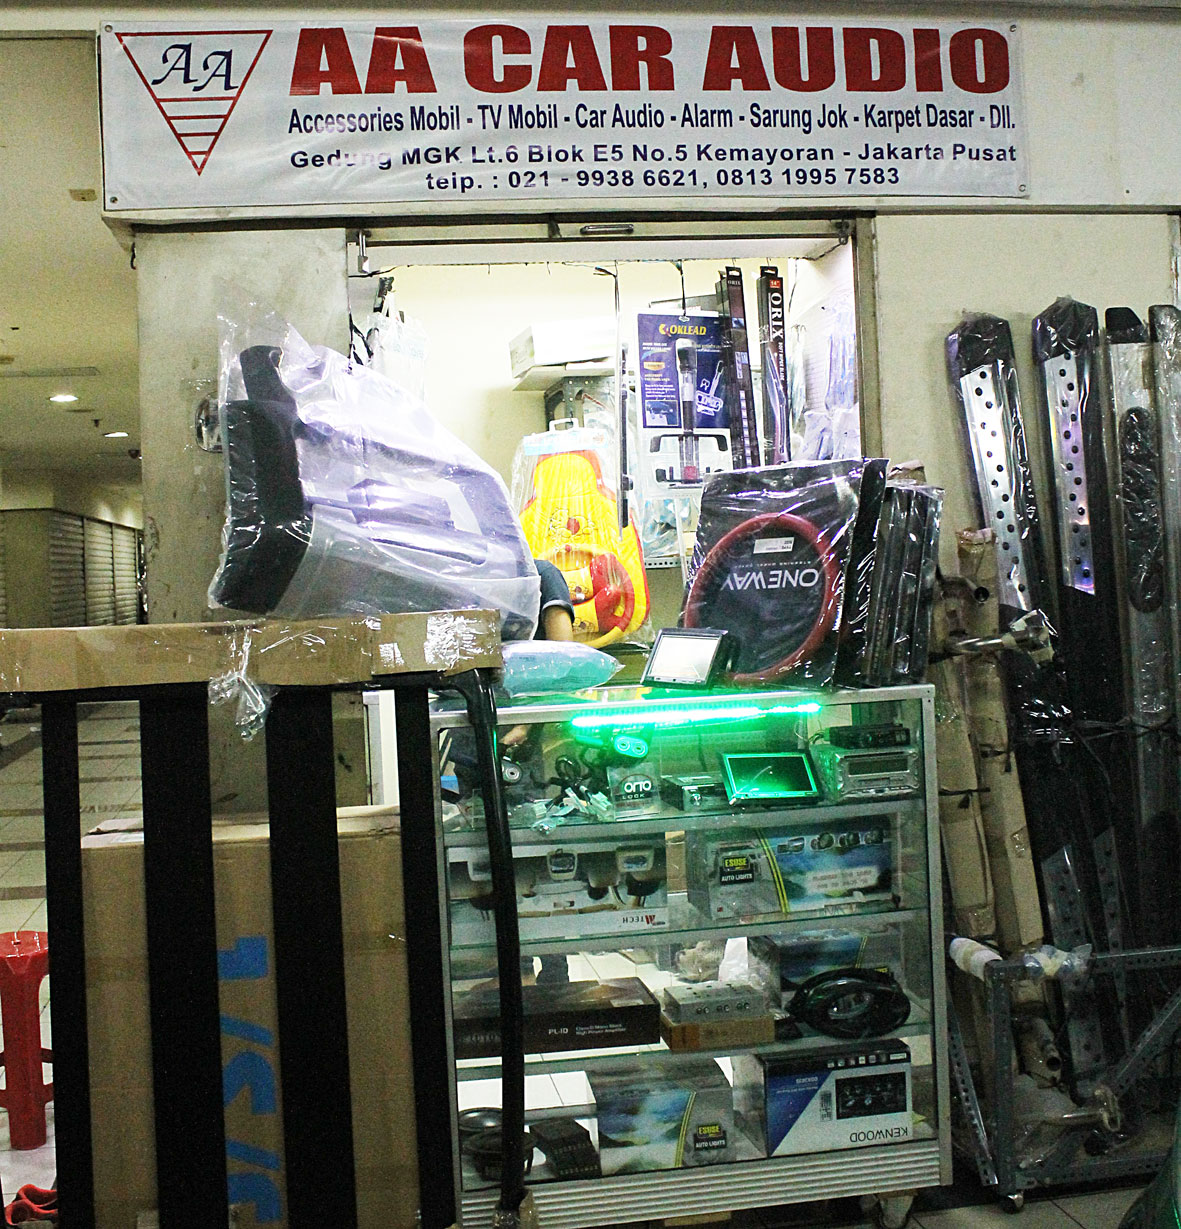 aa-car-audio